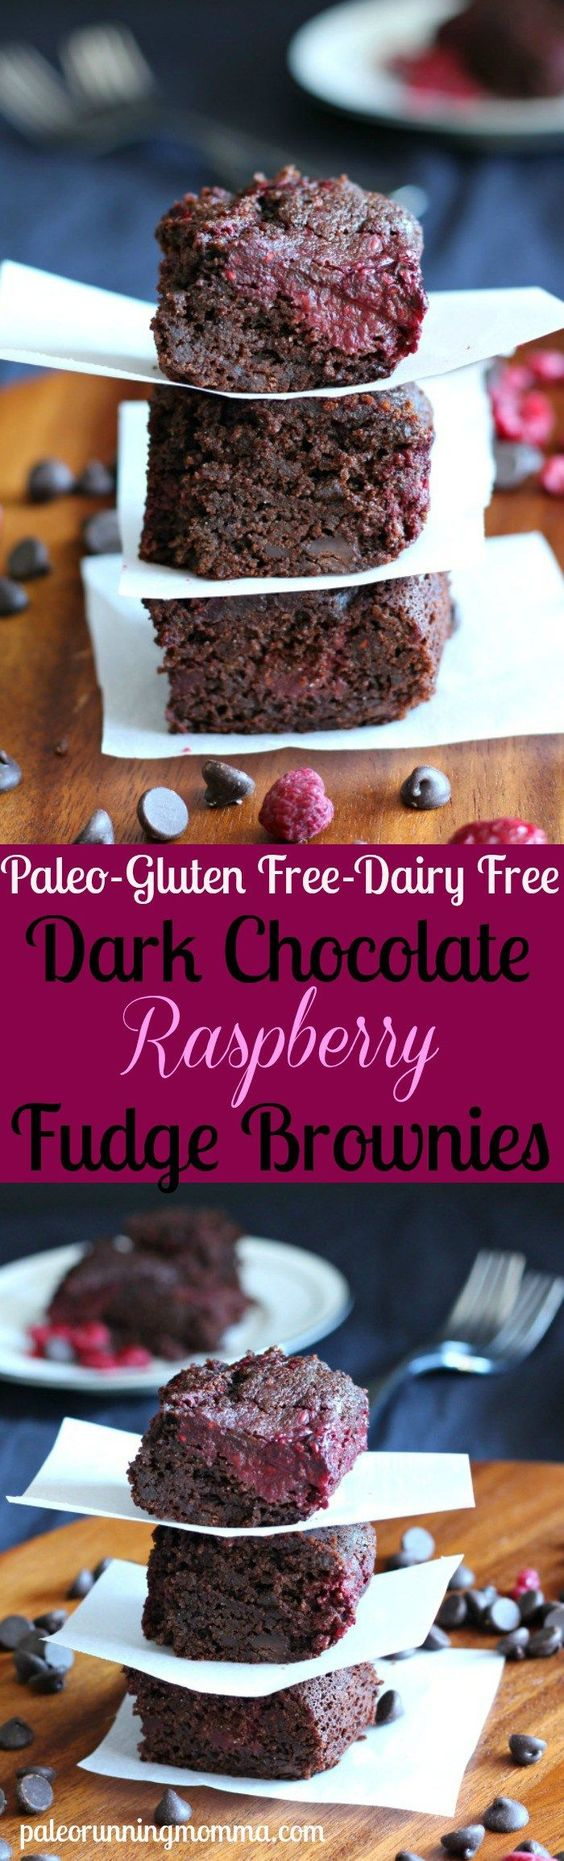 dark-chocolate-raspberry-fudge-brownies-paleo-gluten-free-vegan